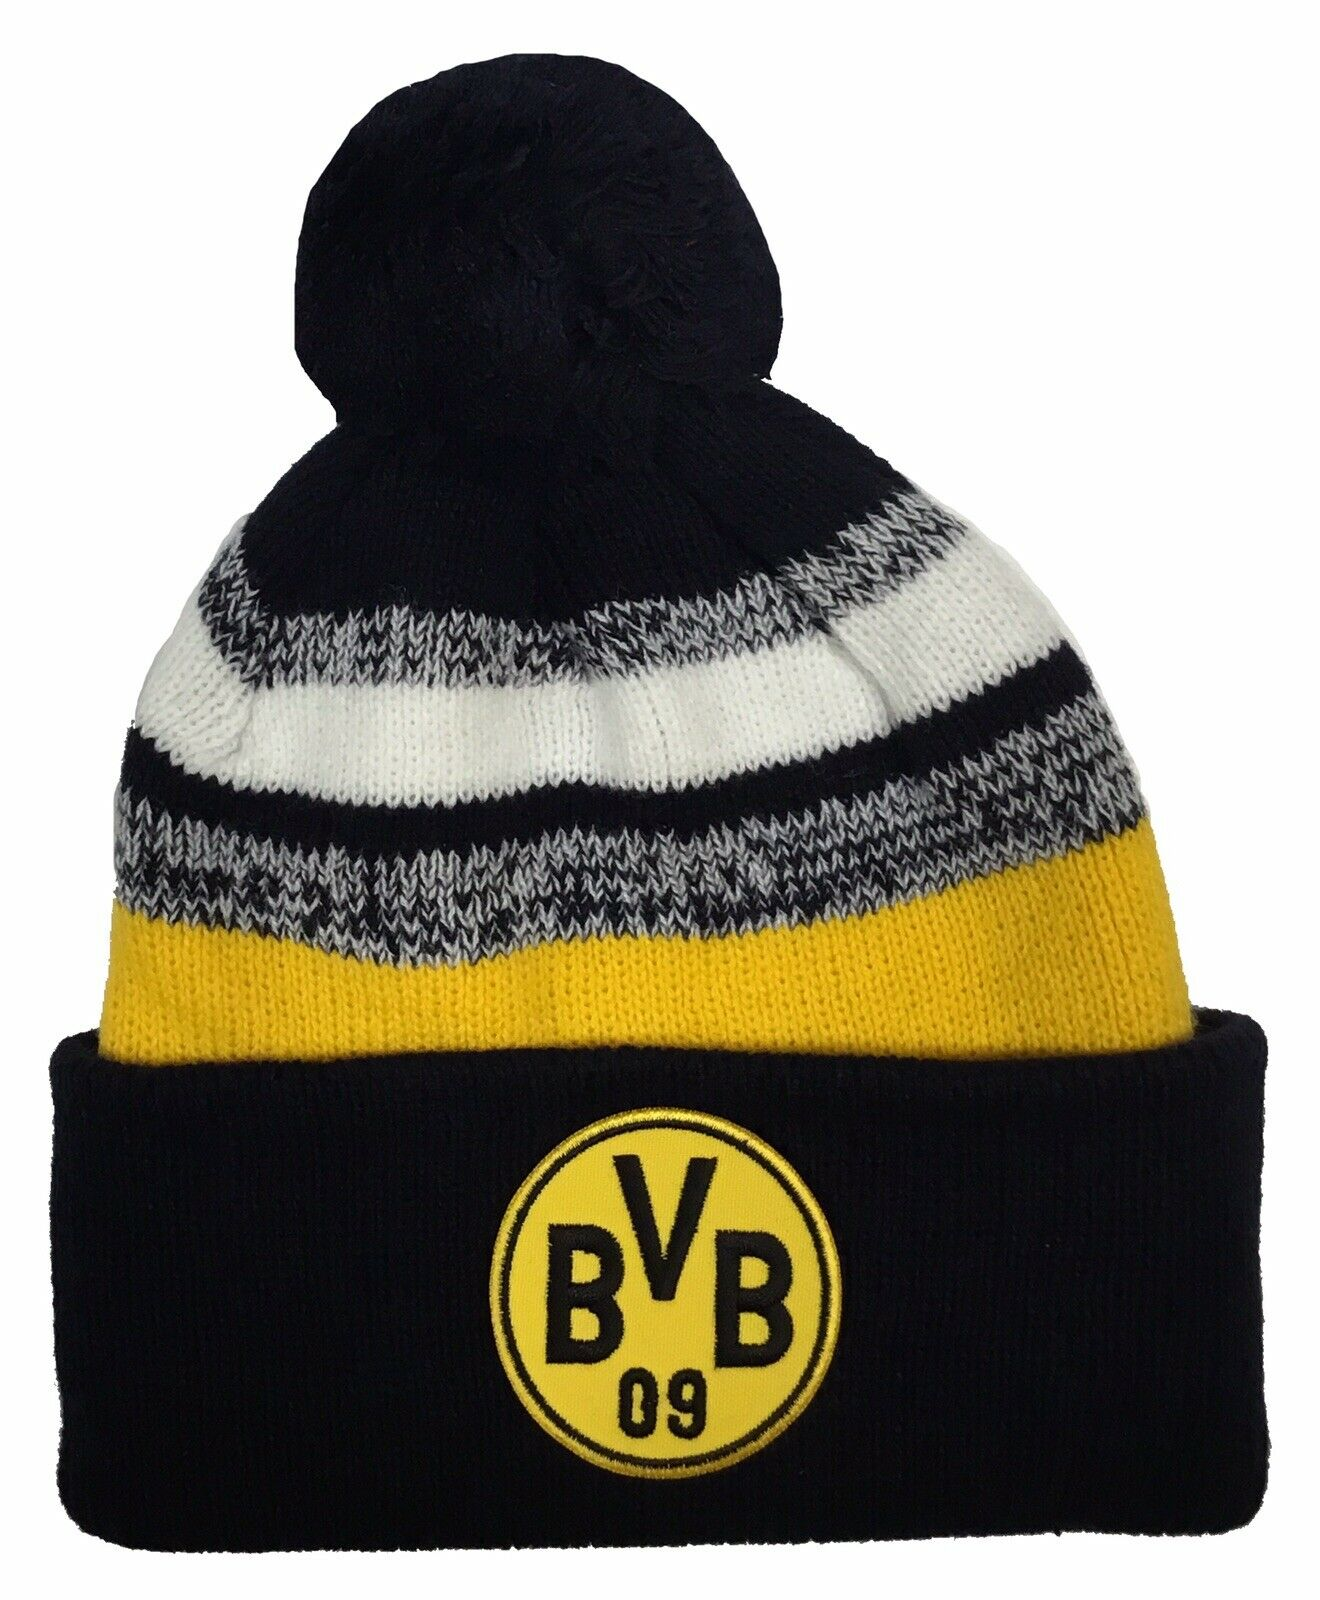 Borussia Dortmund Official Knitted Soccer Crest Beanie Hat For Sale Online Ebay